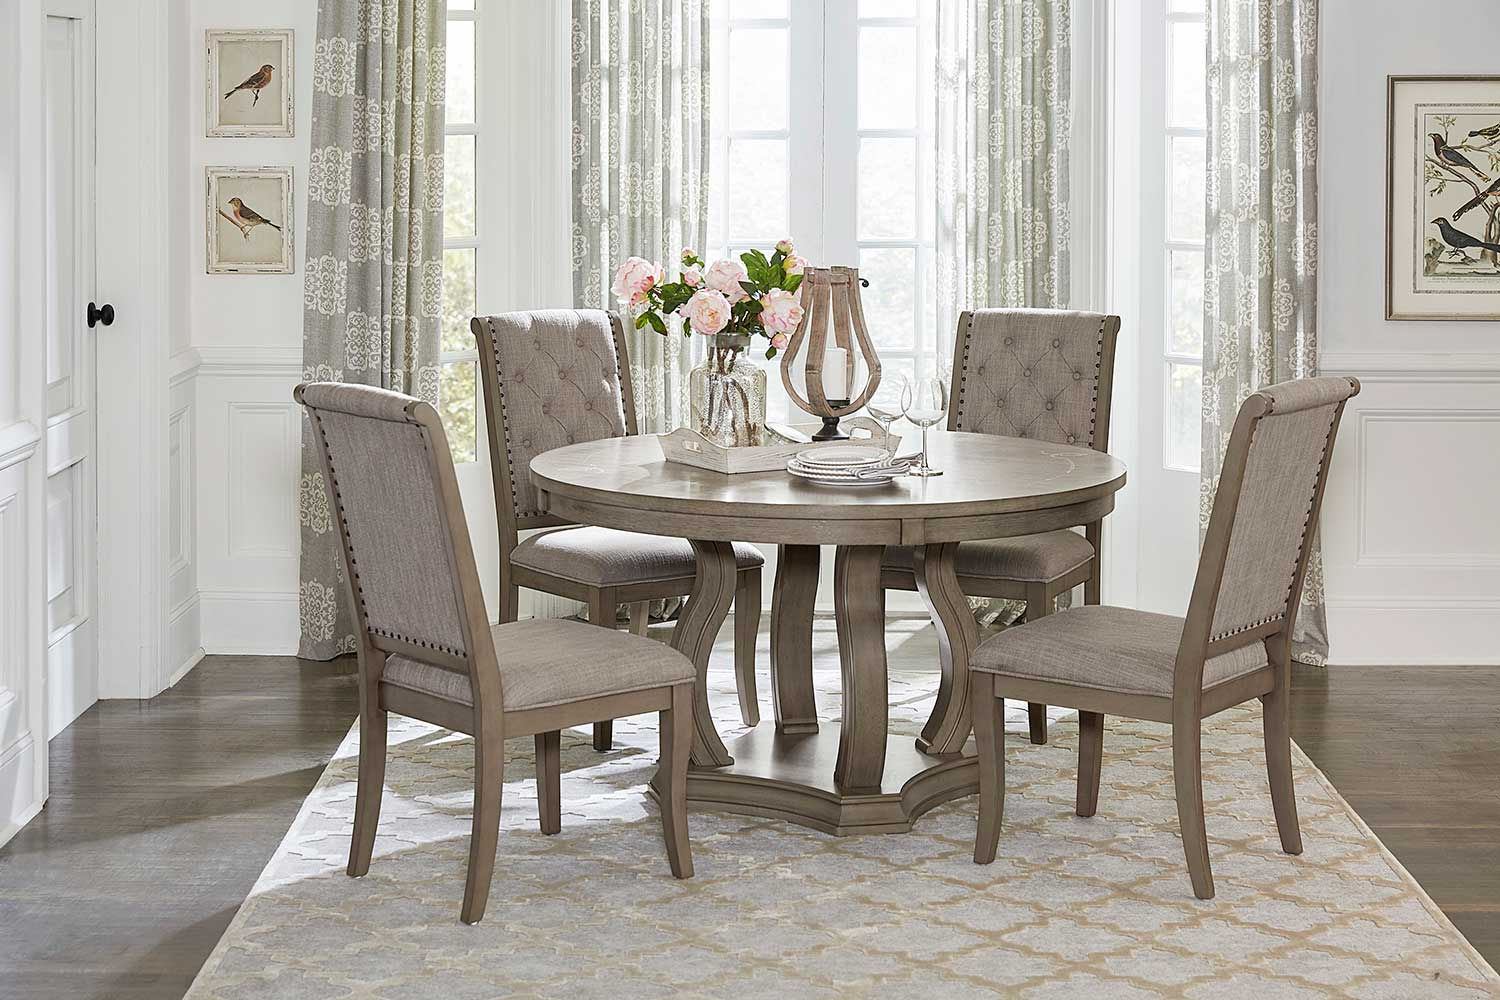 Homelegance Vermillion Round Dining Set - Bisque